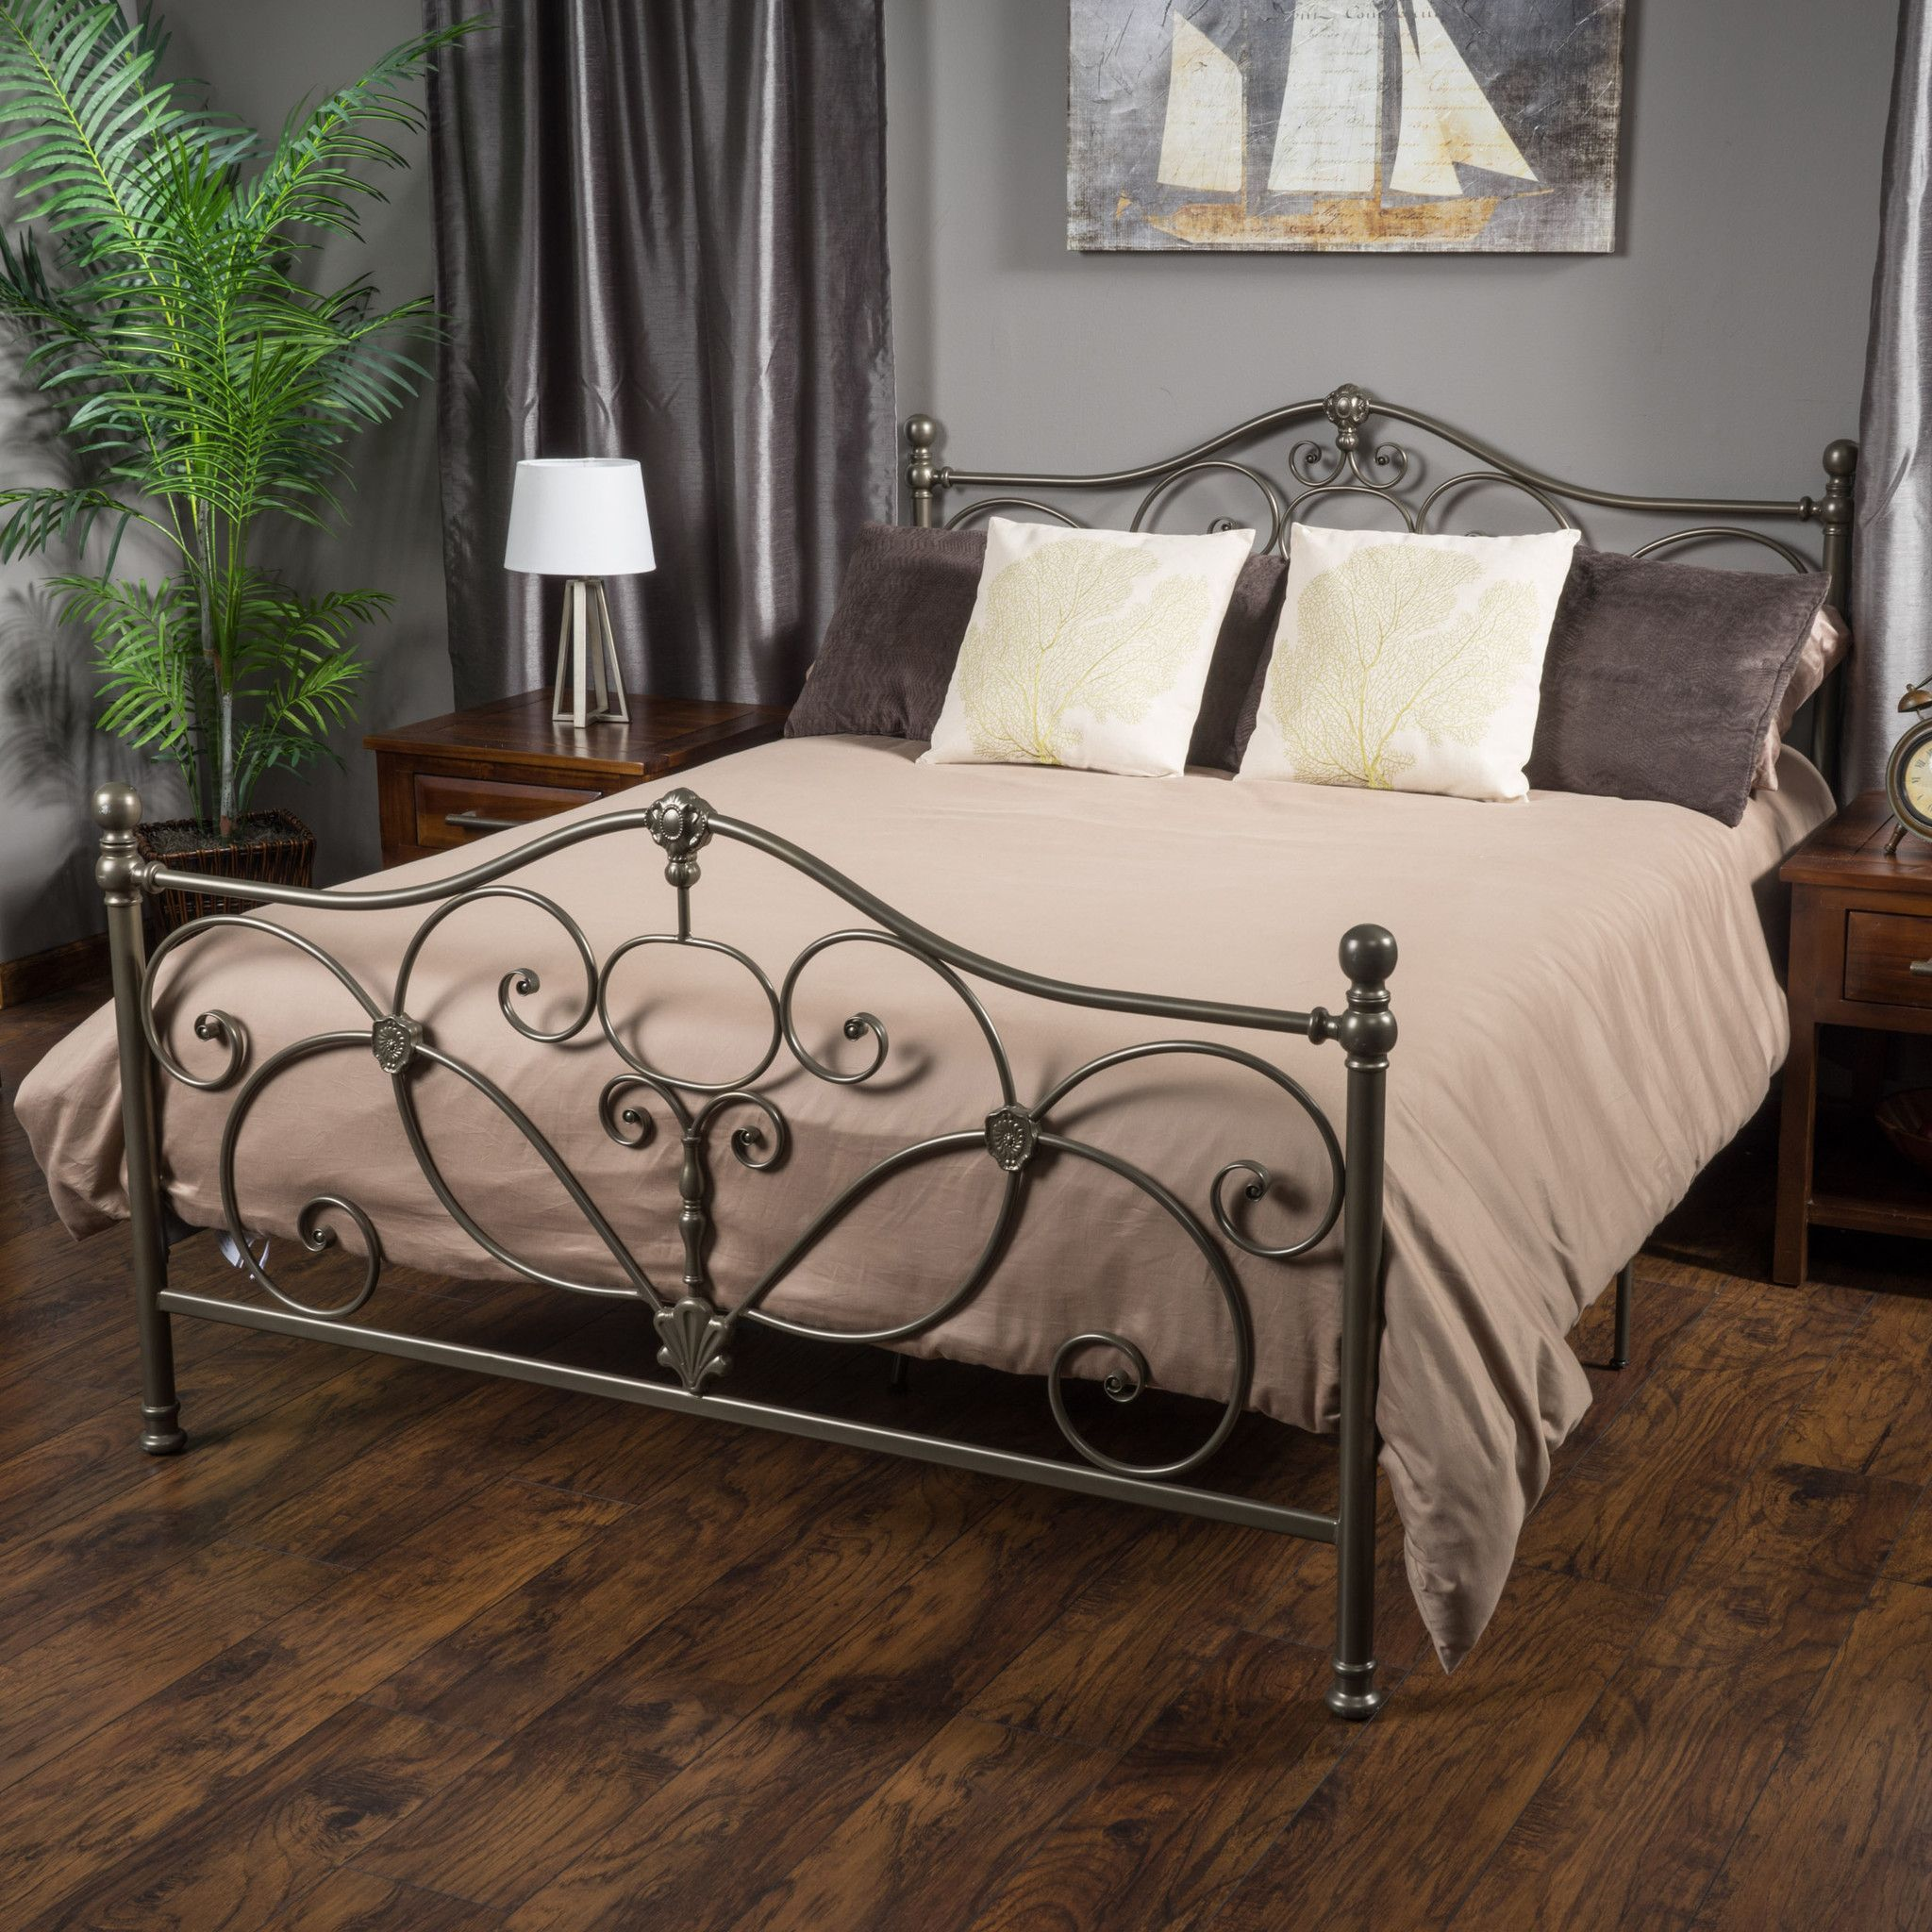 Denise Austin Home San Luis King Champagne Iron Bed | Pinterest ...